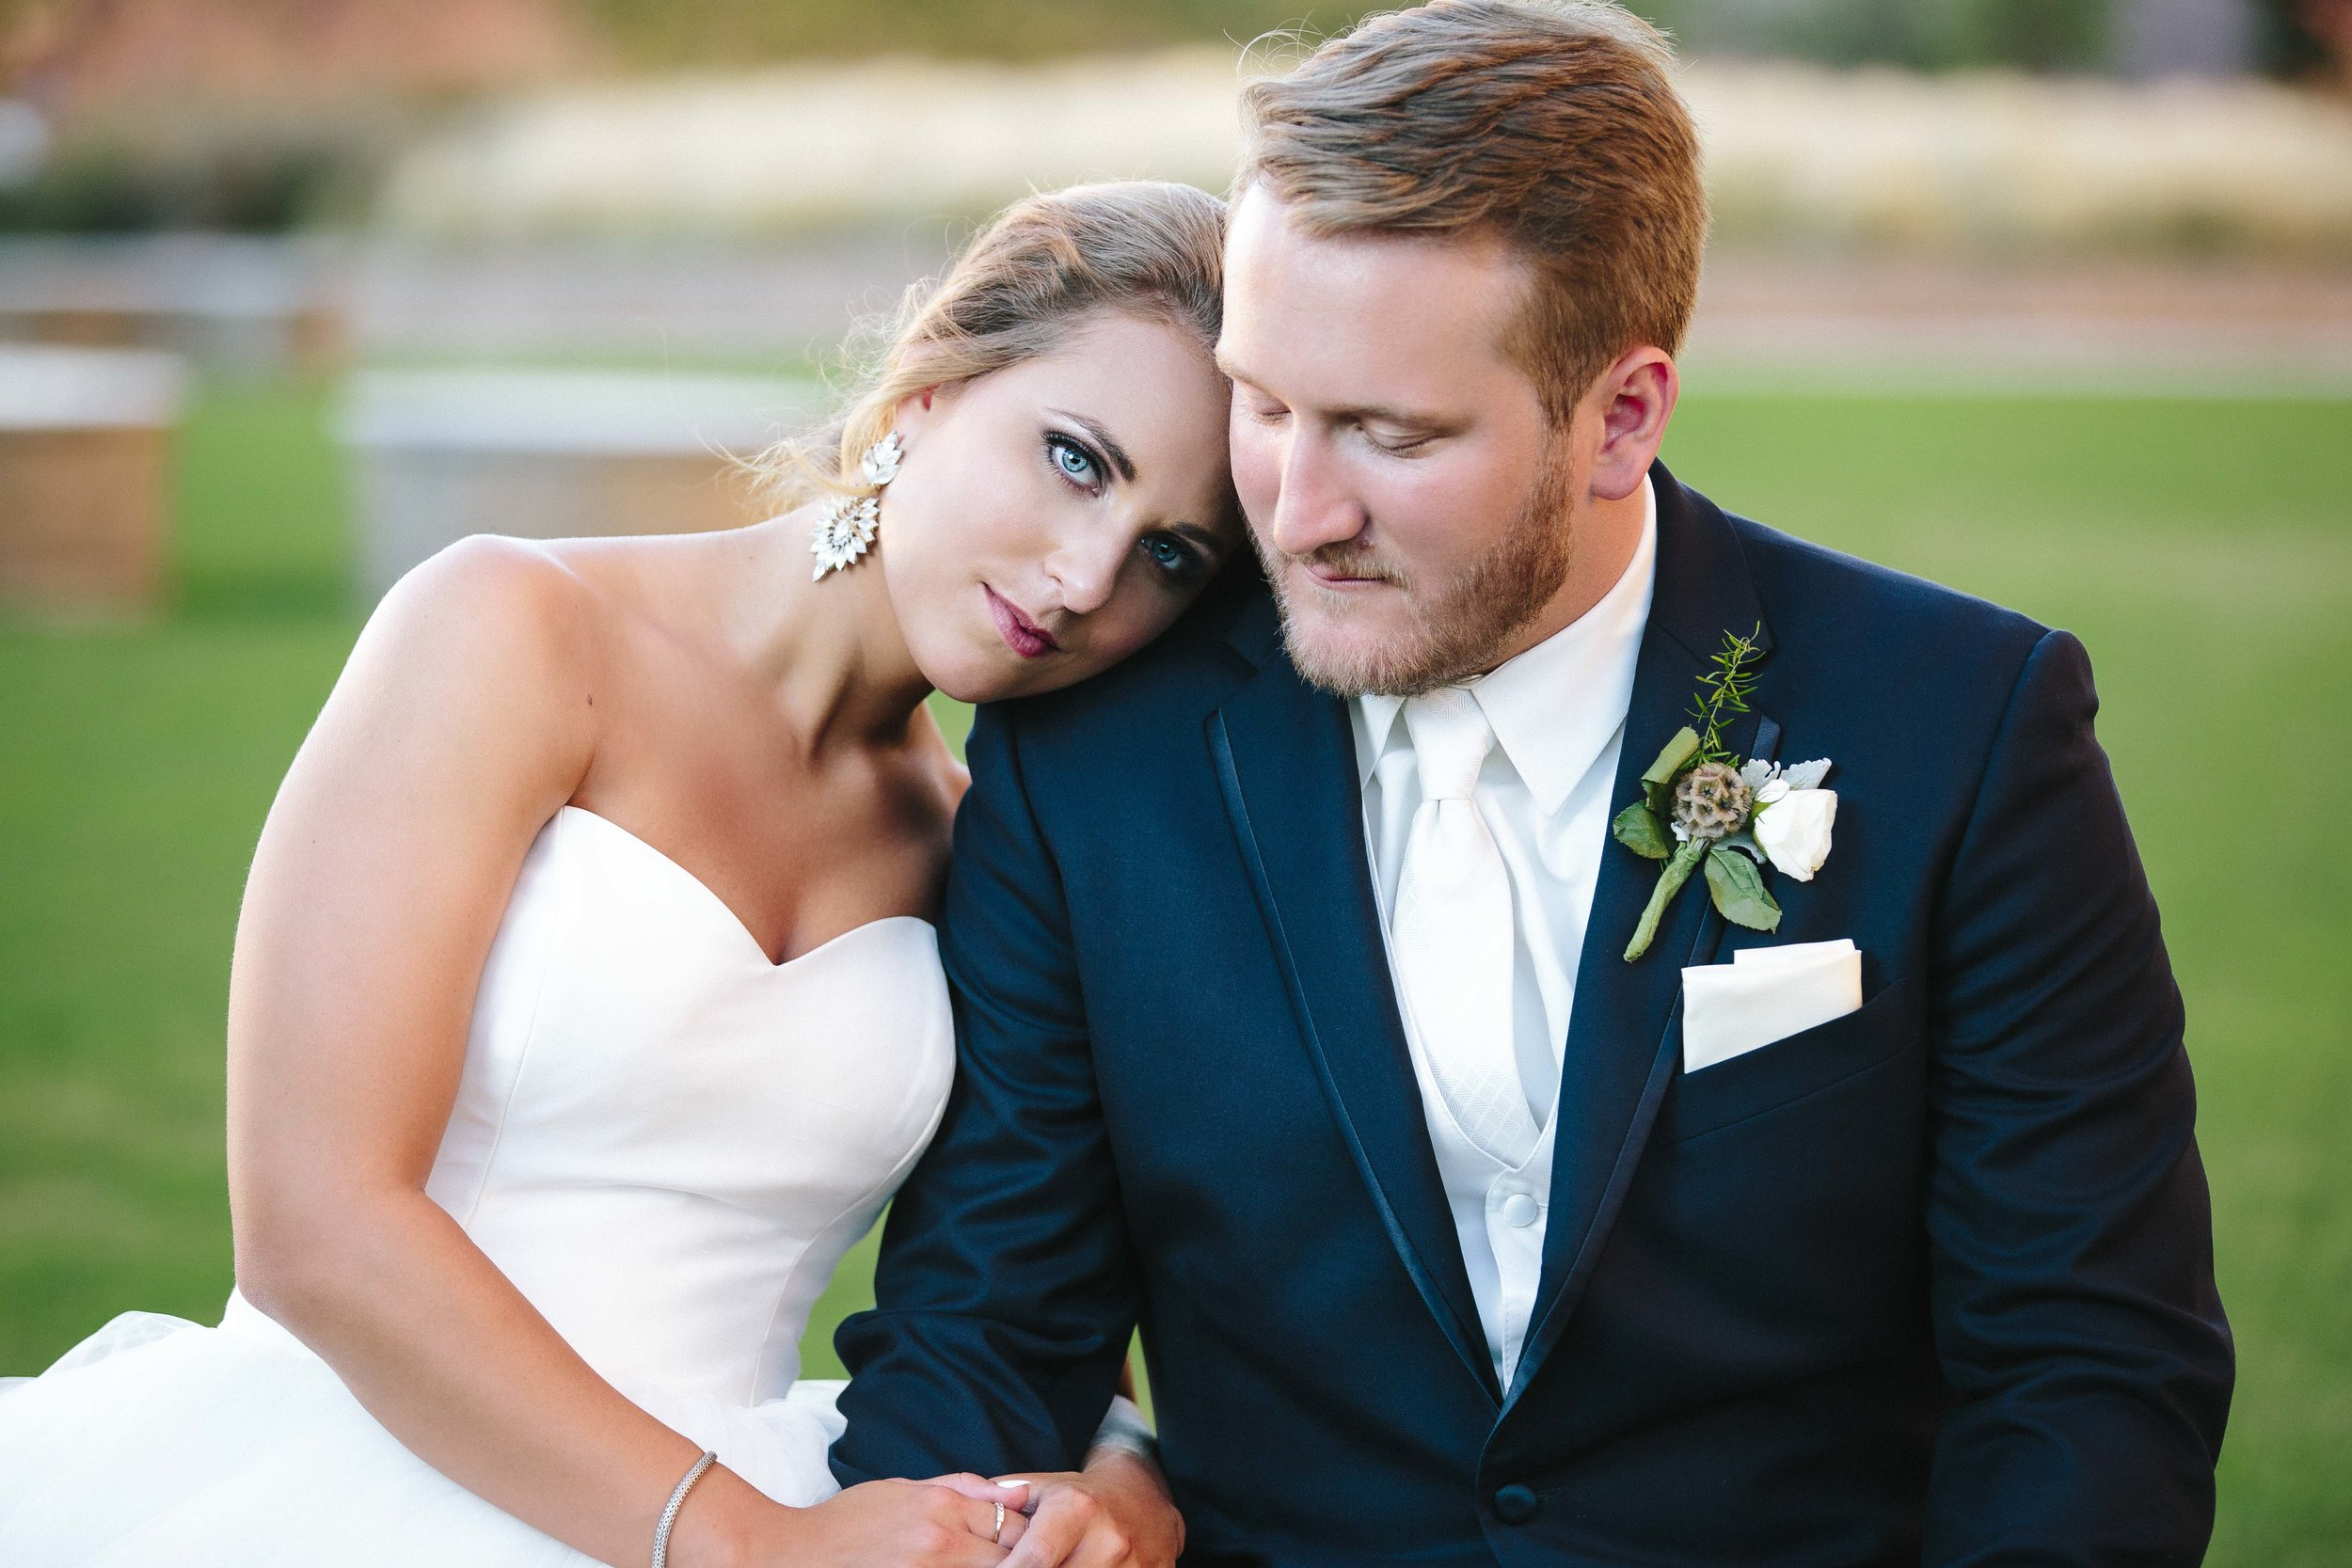 texas tech club, jones at&t stadium, lubbock texas, lubbock wedding photography, film, romantic wedding portraits